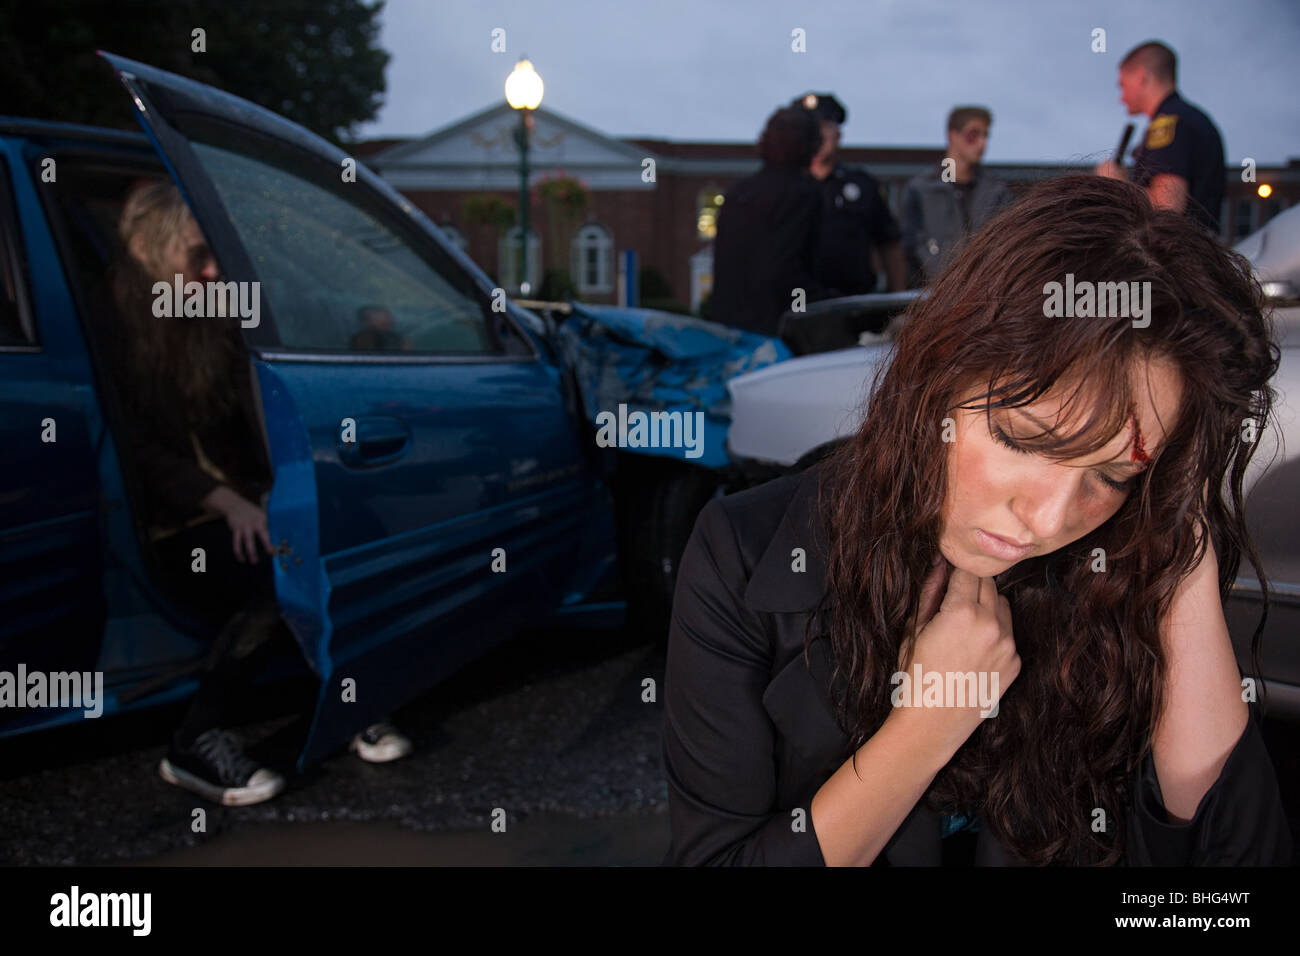 Teenage girl involved in a road accident - Stock Image